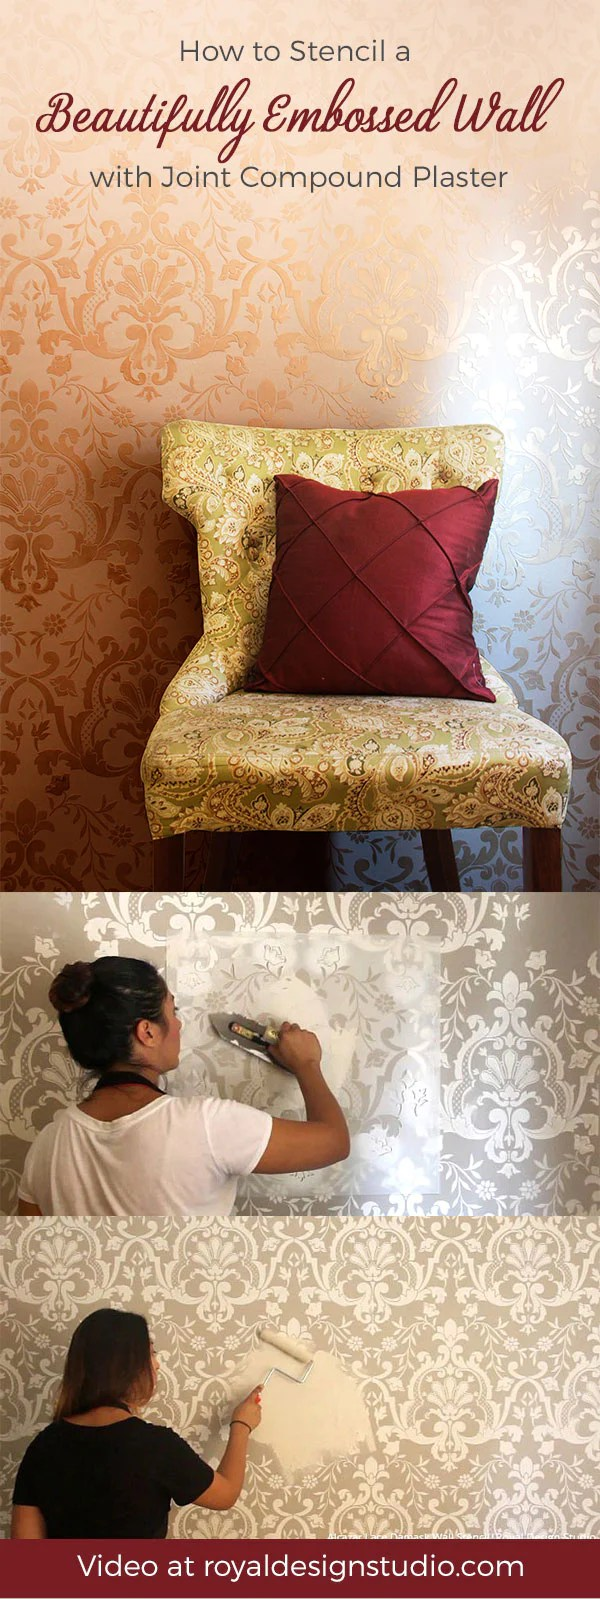 Royal Design How To Stencil Diy Embossed Wall Designs With Joint Compound Plaster